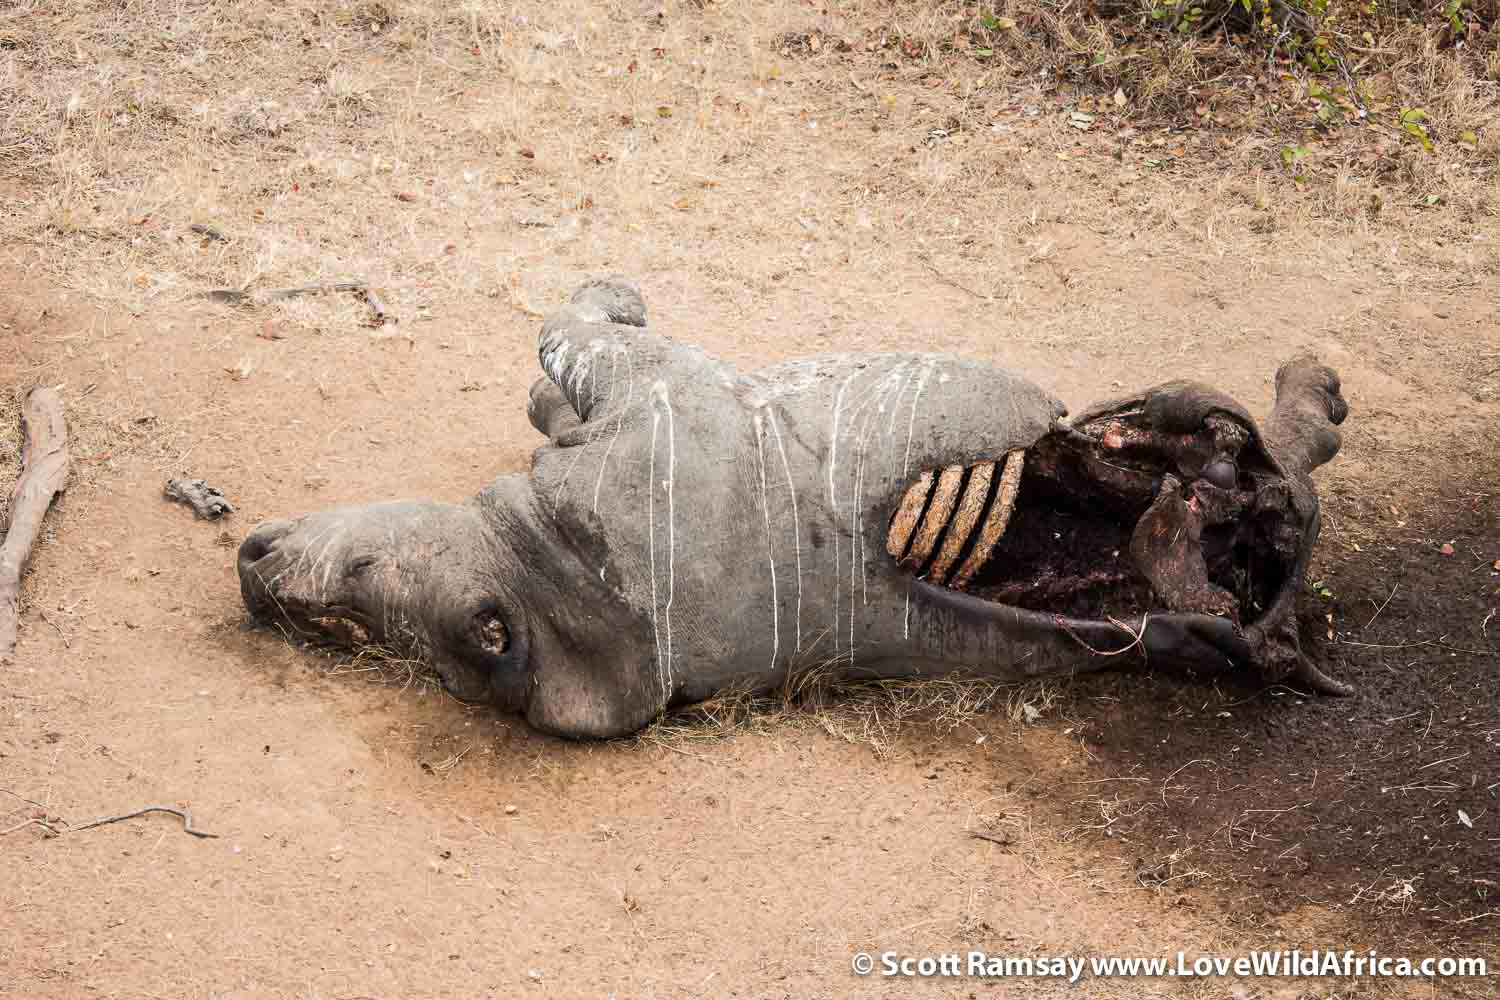 Kruger National Park in South Africa. An aerial photograph taken from a helicopter of a dead white rhino (Ceratotherium simum), killed by poachers for its horn.